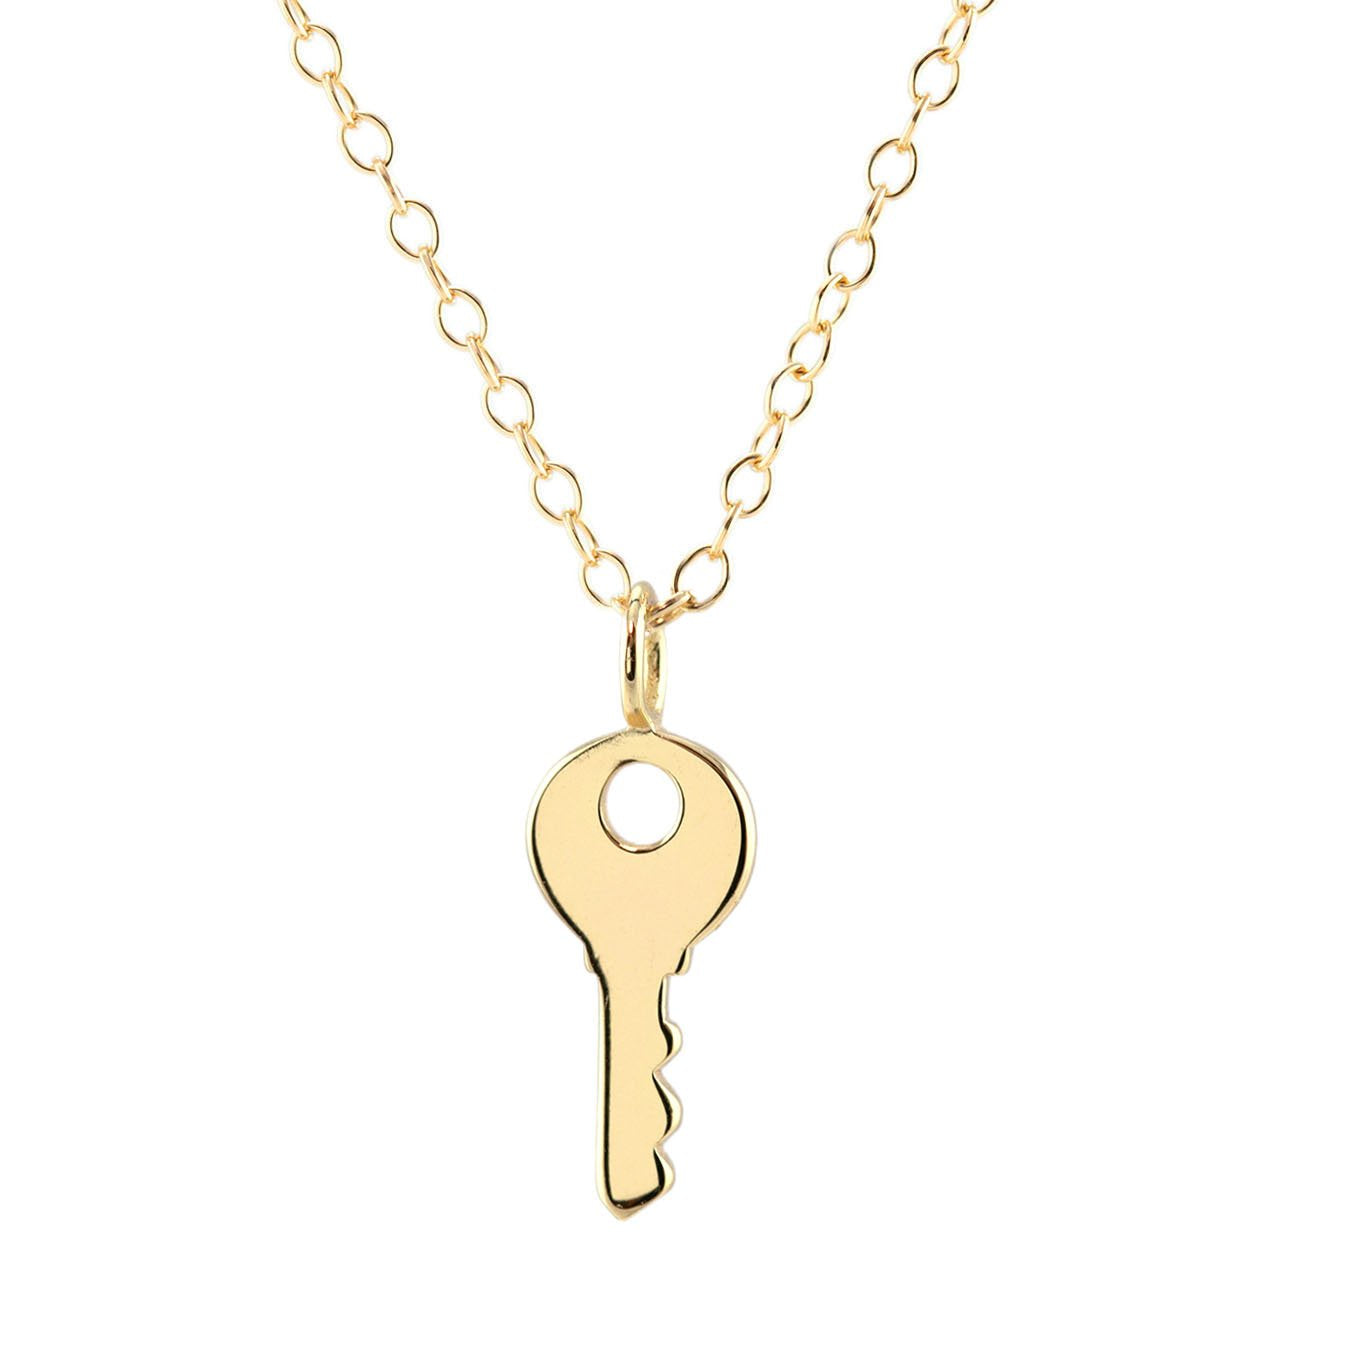 KRIS NATIONS - KEY CHARM NECKLACE IN GOLD